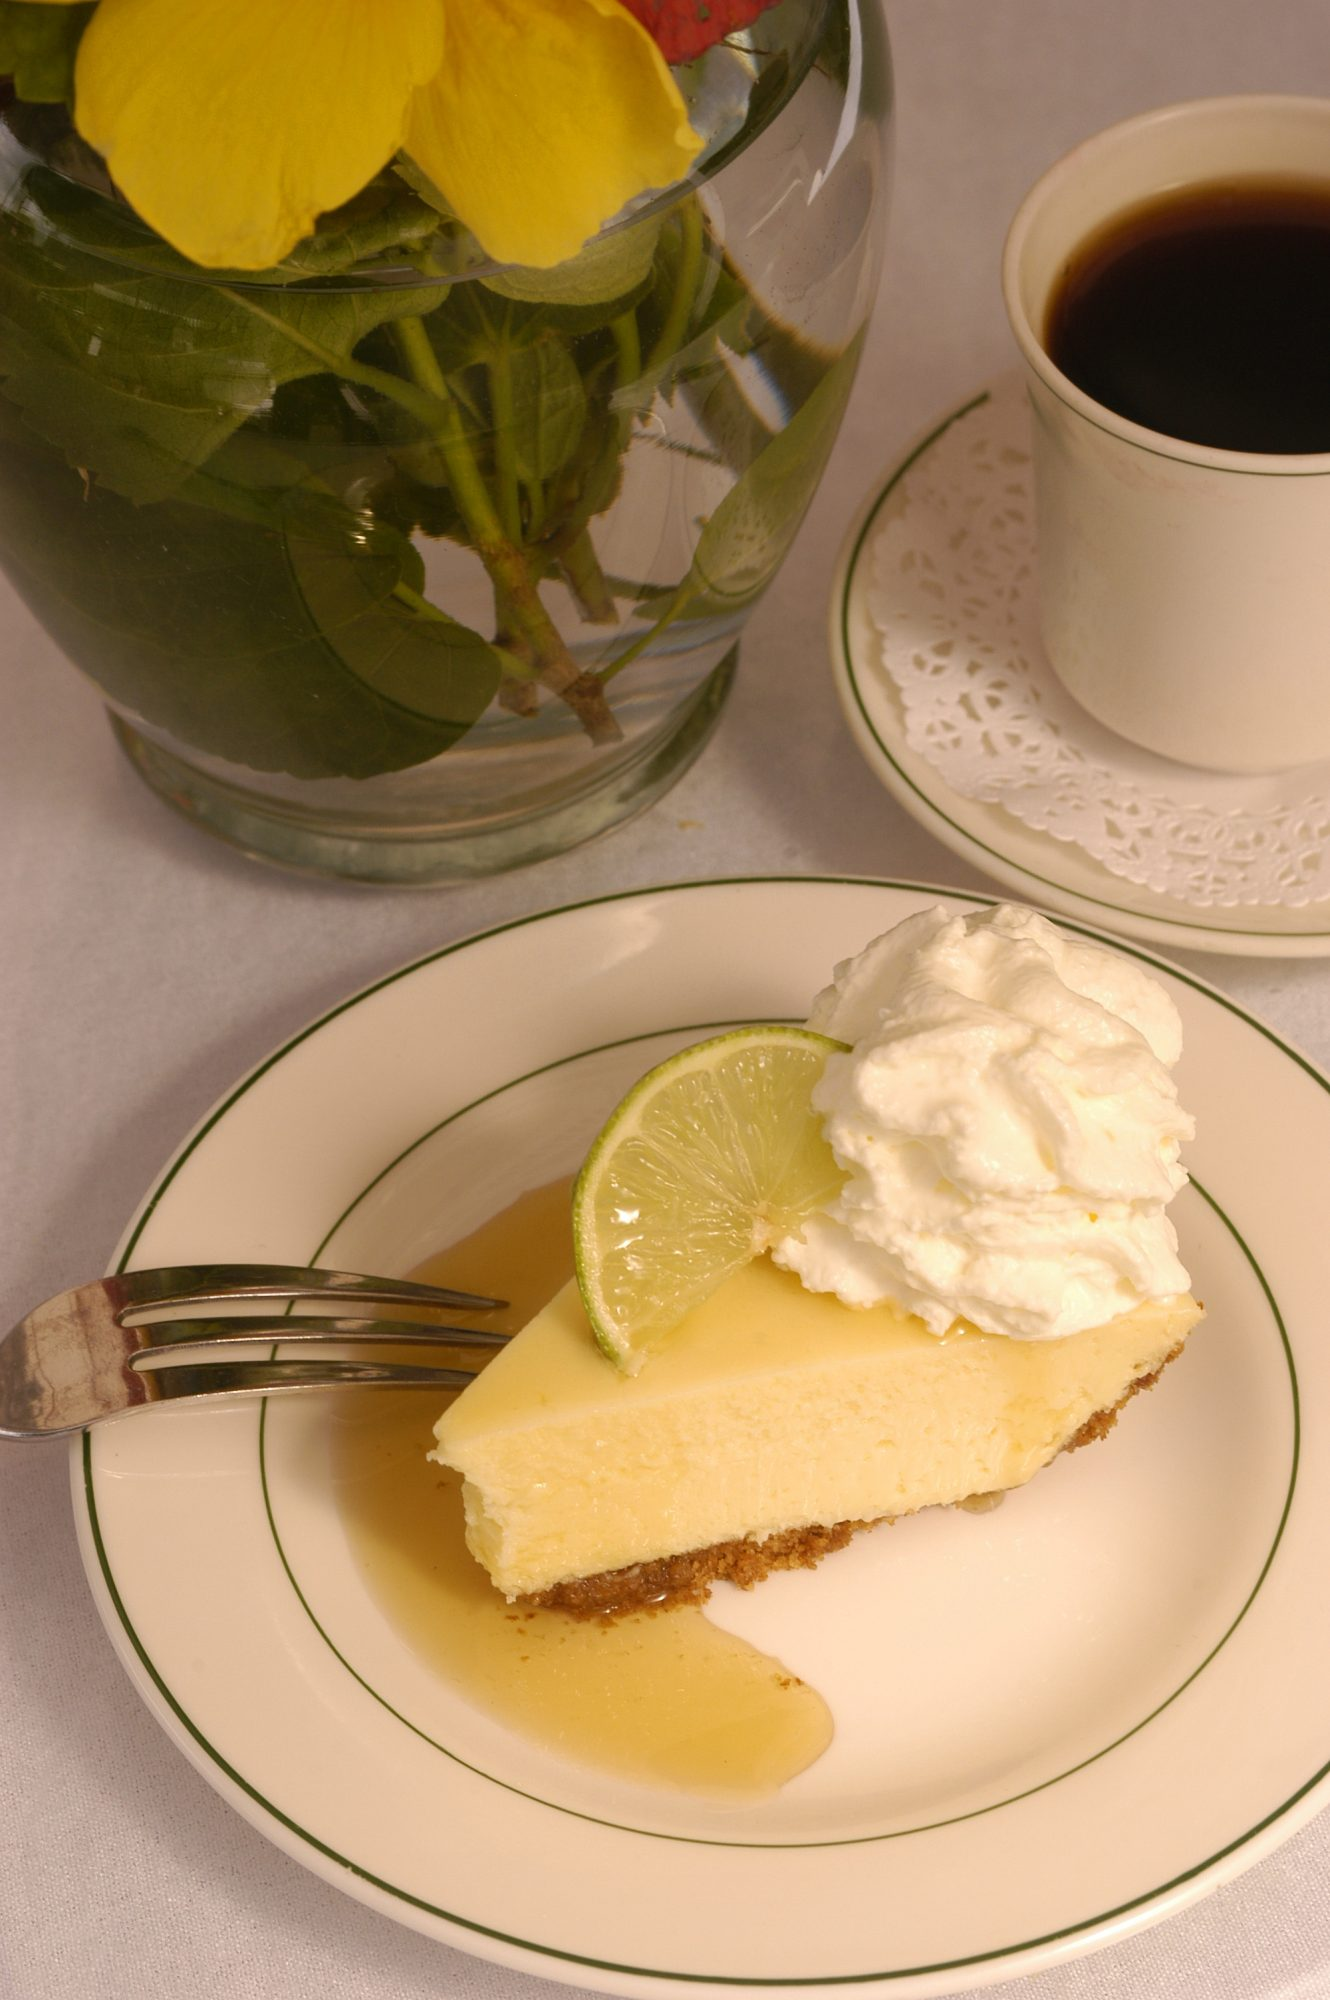 Key lime pie is the signature dessert of the quirky island. Equal parts sweet and tart, it's a must-try at Kermit's Key West Key Lime Shoppe on Duval Street.